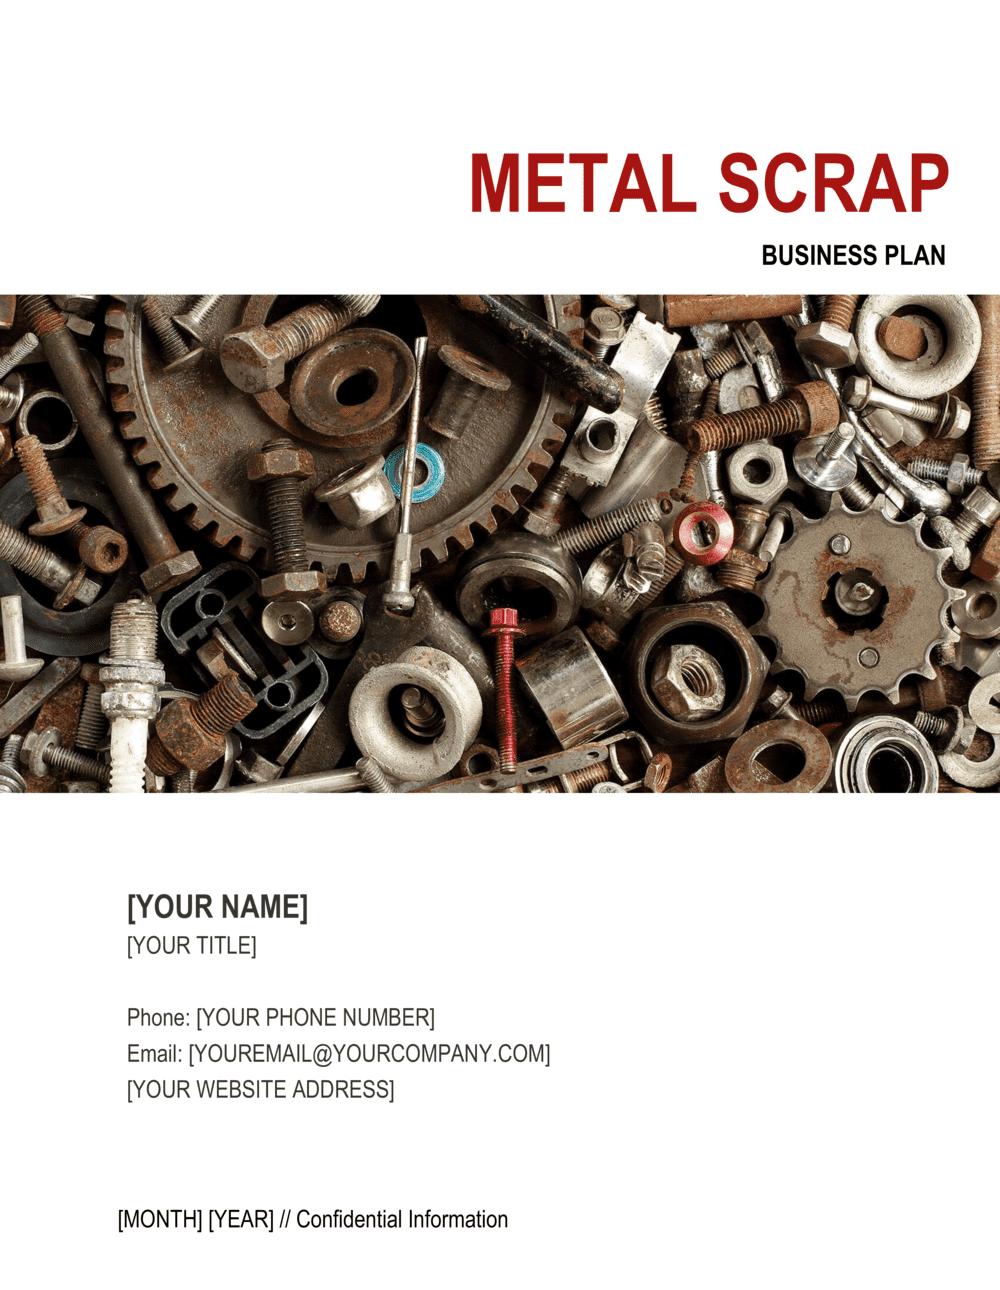 Business-in-a-Box's Metal Scrap Business Plan Template